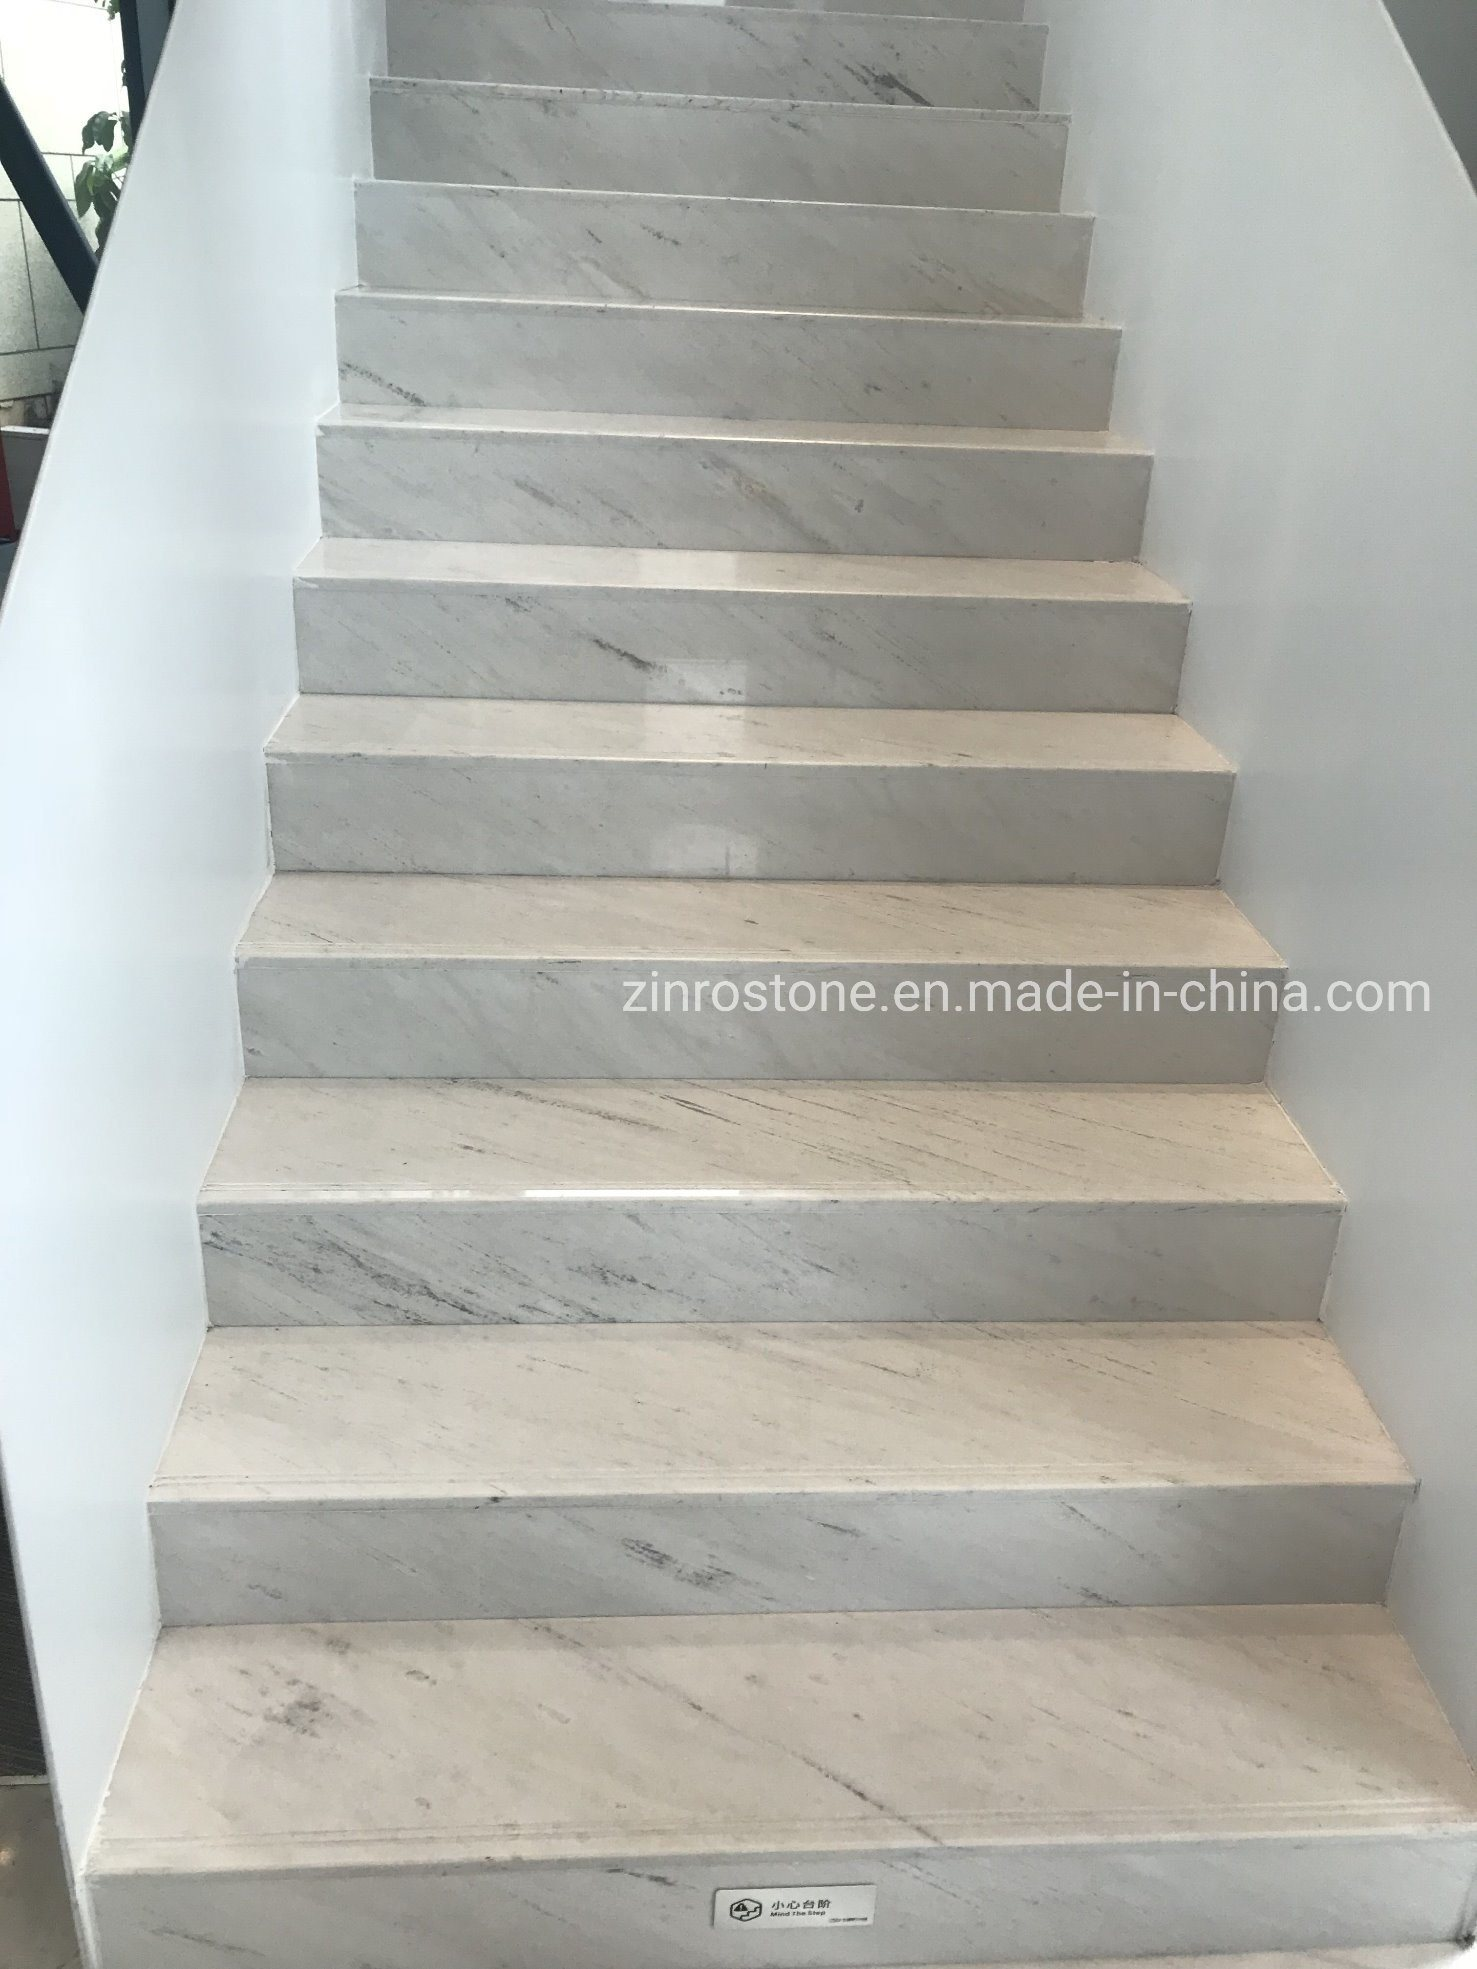 China New Yugoslavia New Ariston White Marble Slab For Countertop Wall Tile Stairs China Marble Wall Tile Marble Slab